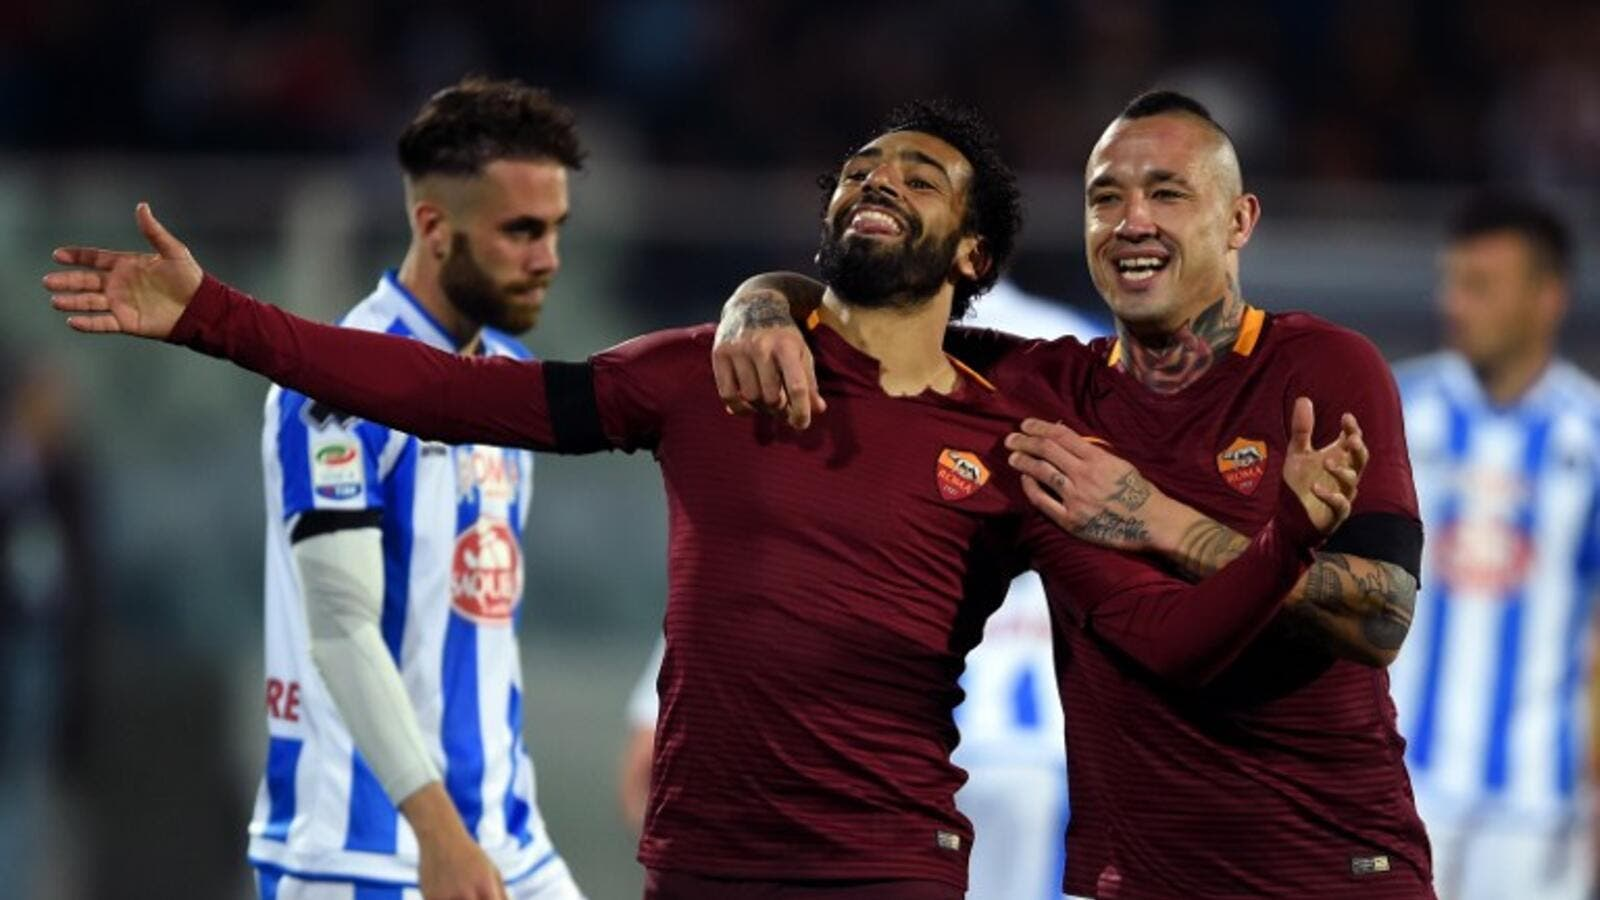 The Pharaohs star is enjoying a fine run in his second season with the Giallorossi, scoring 13 goals in Serie A so far this term